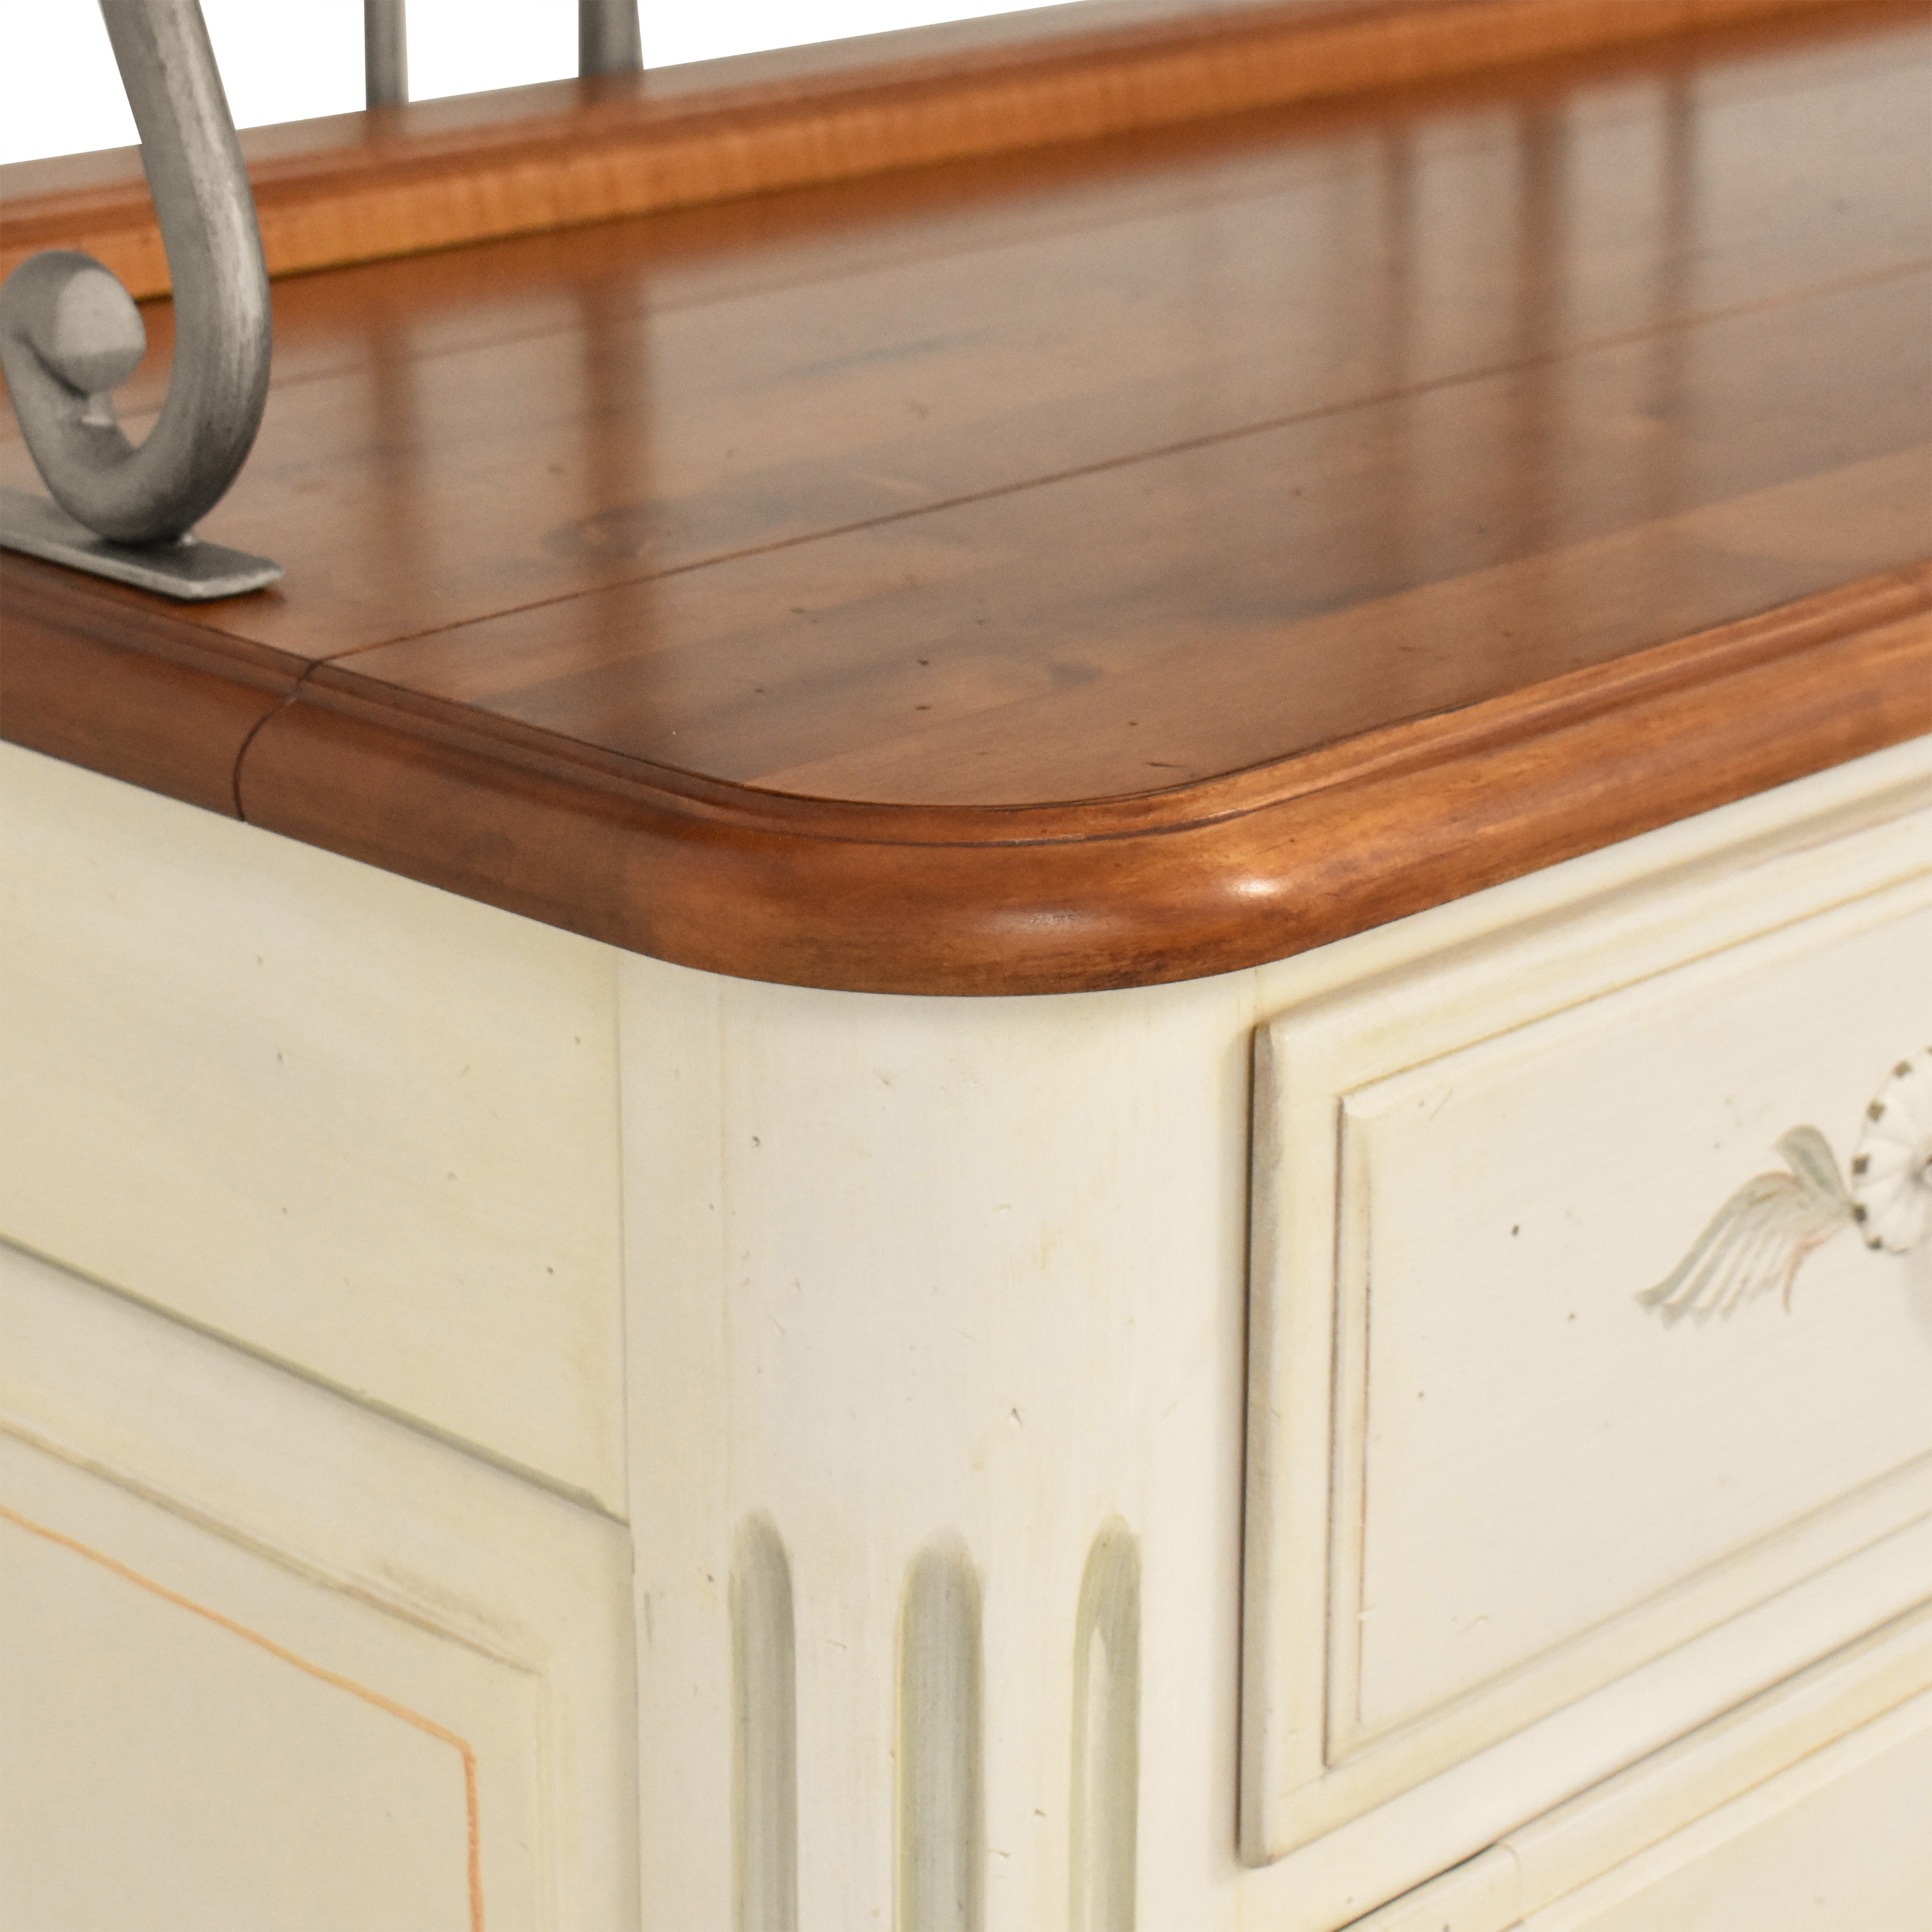 Ethan Allen Ethan Allen French Country Sideboard Baker's Rack price